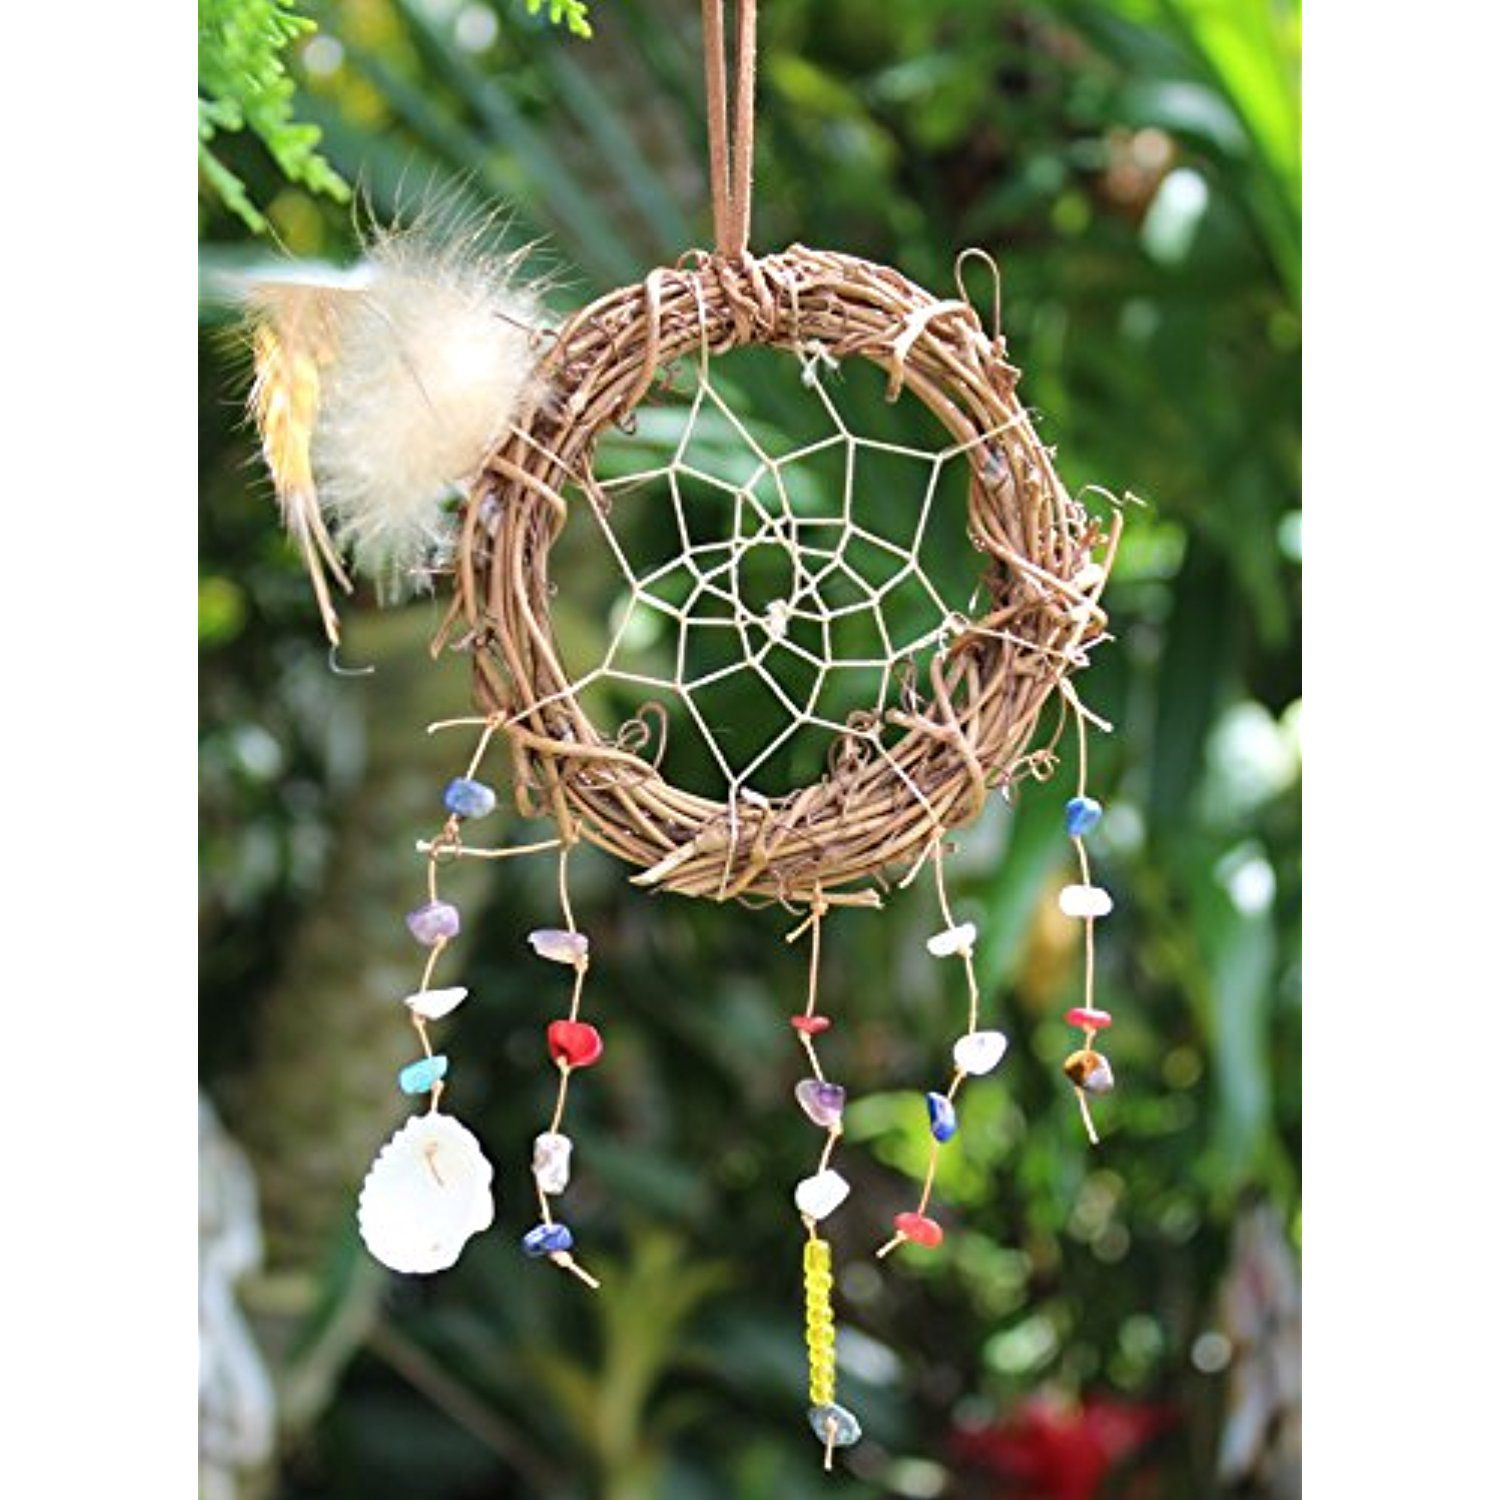 Artsicraft Large Handmade Dreamcatcher, Dream Catcher Net With Feathers Perfect